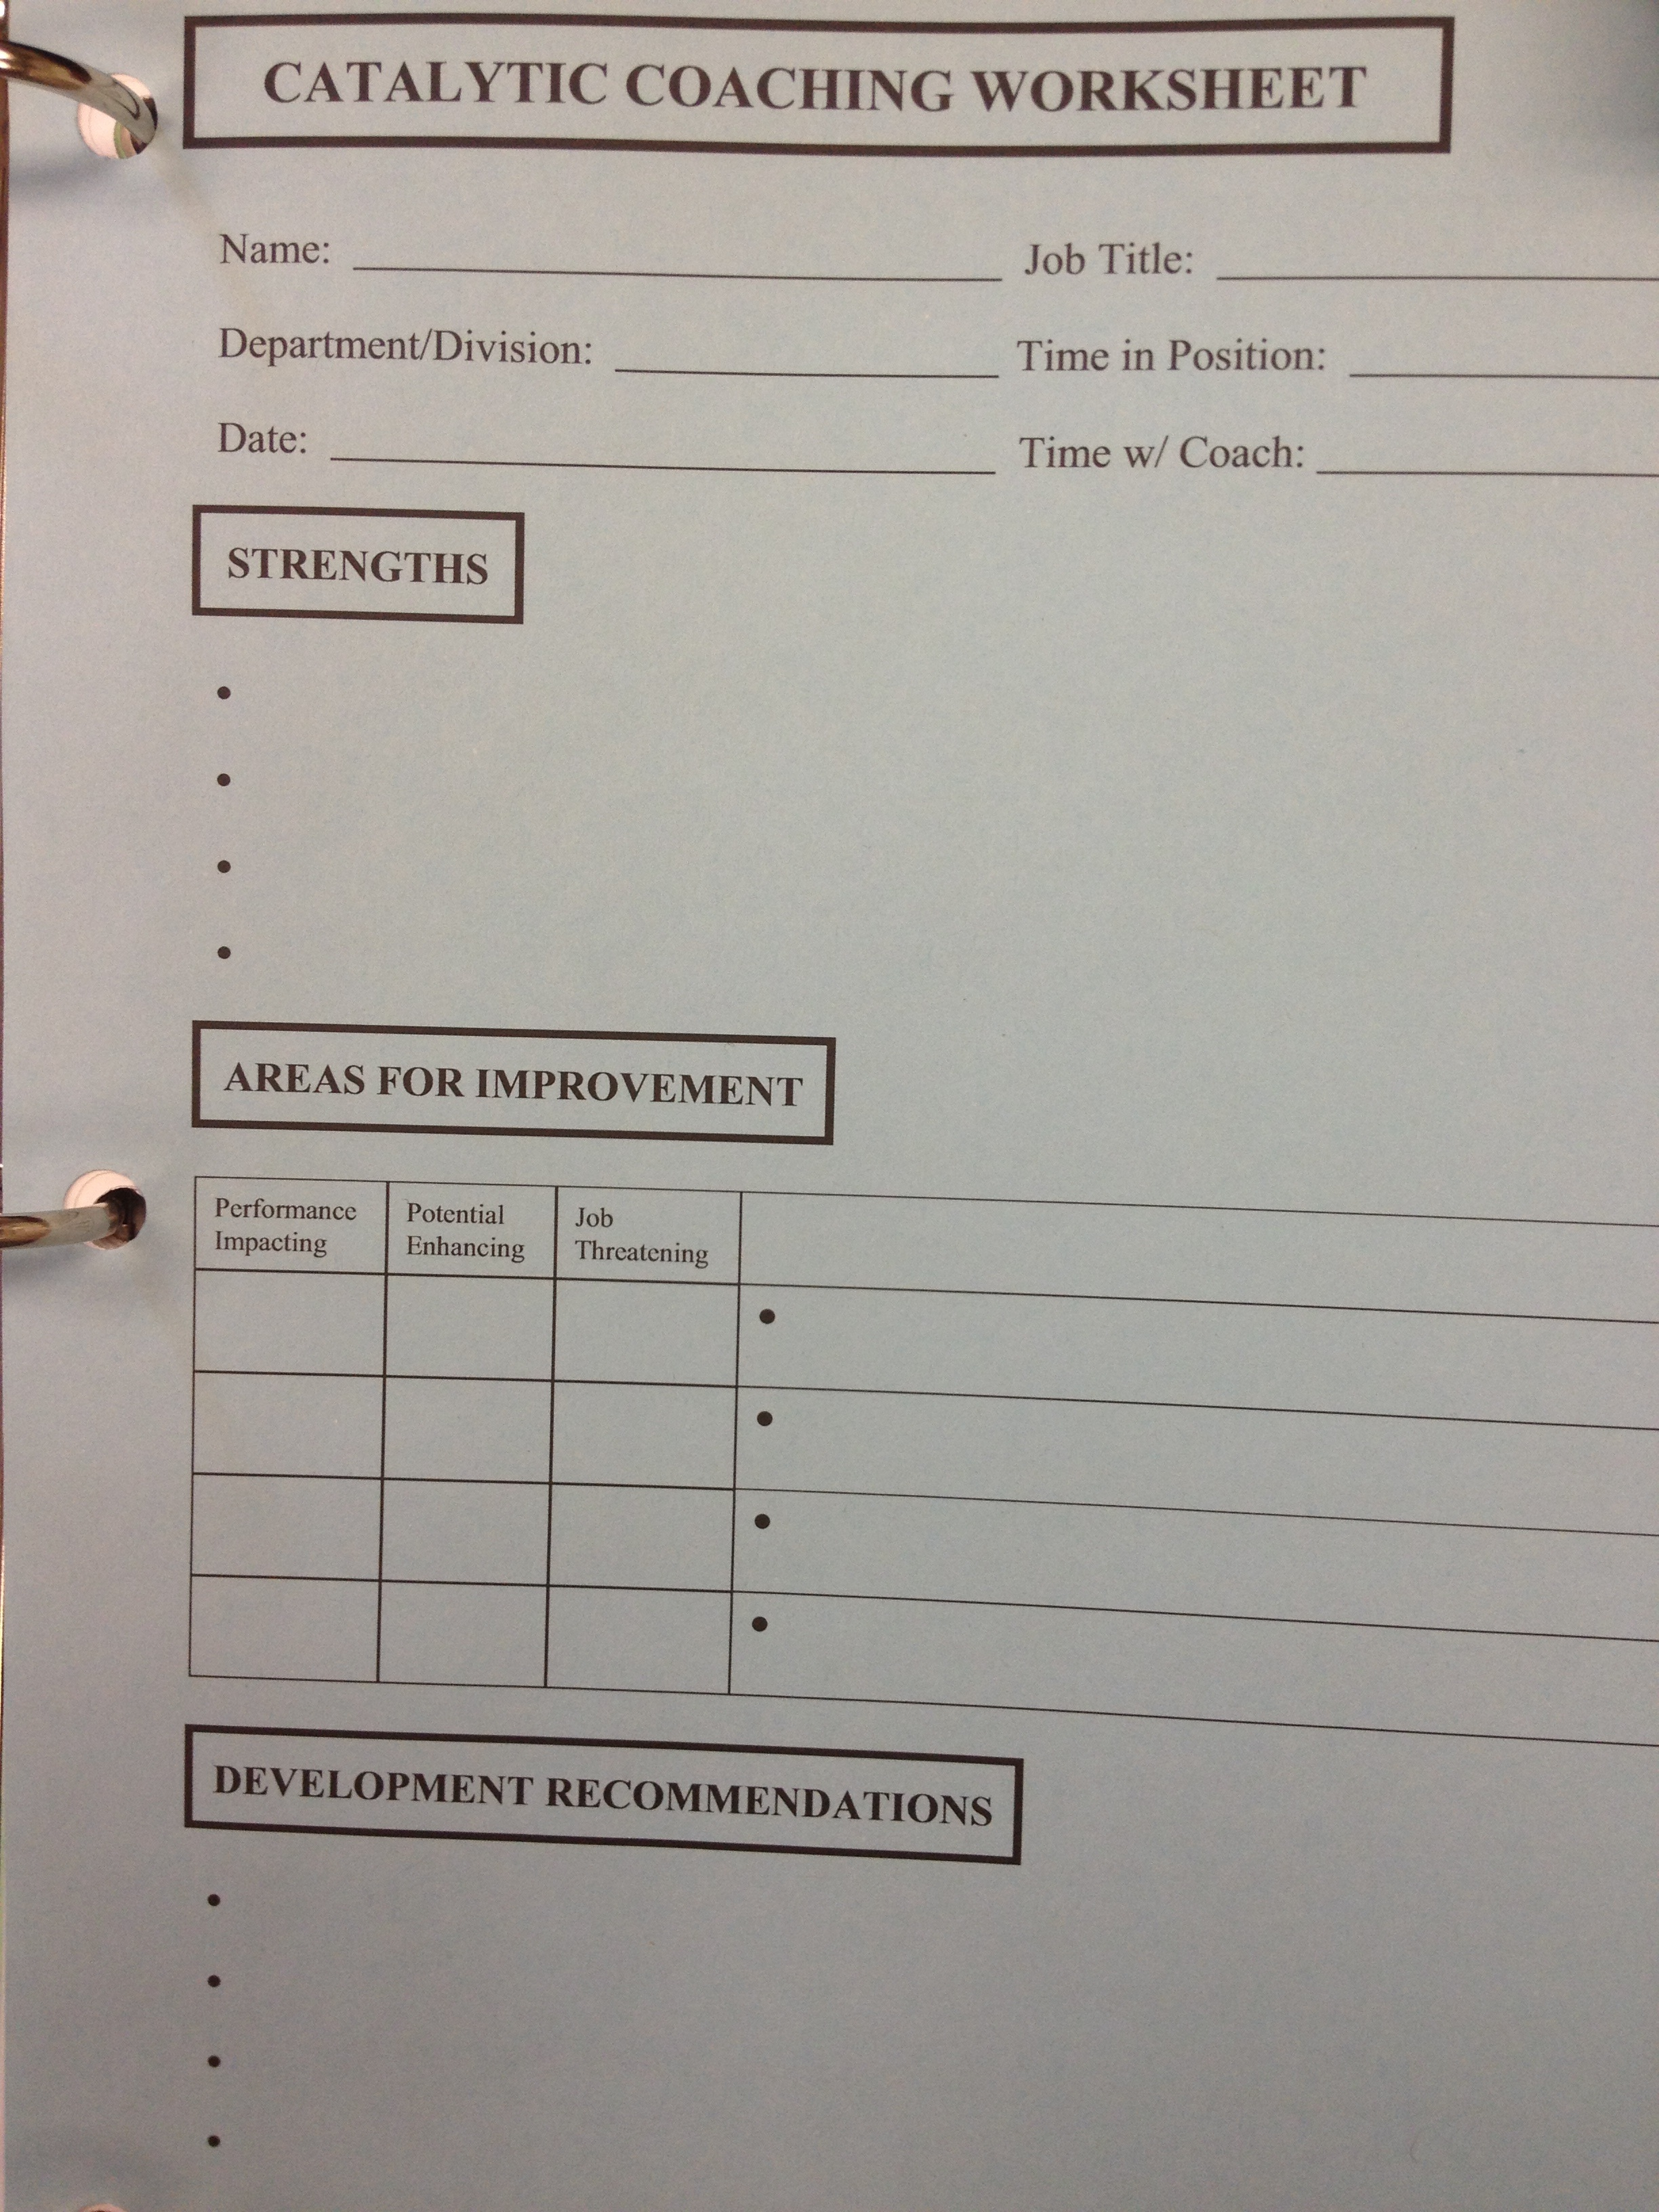 Coaching Worksheet2